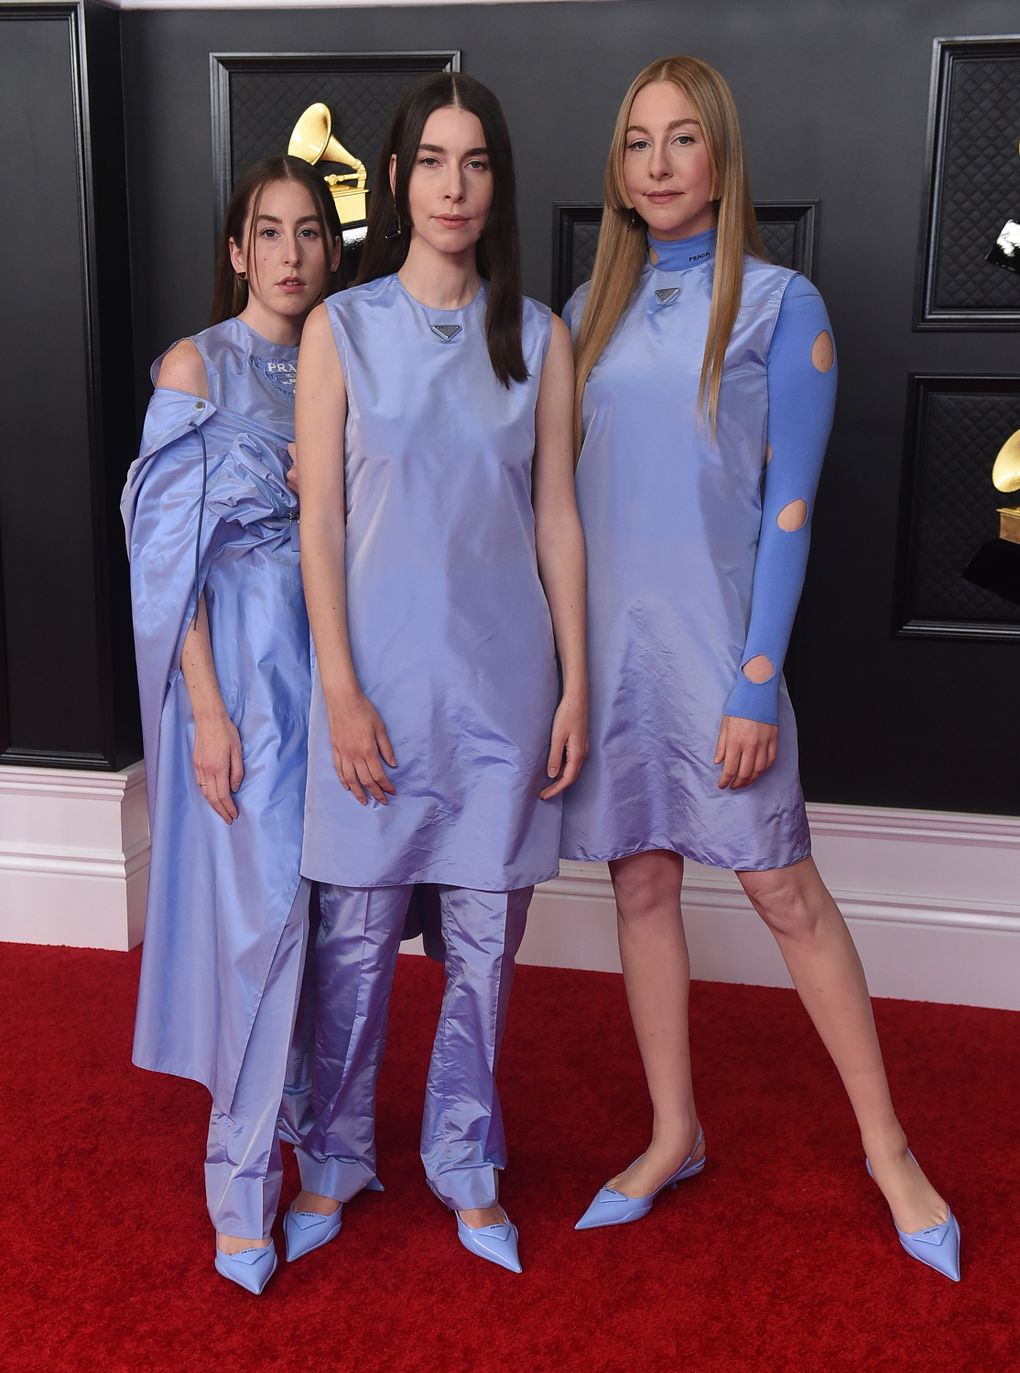 Alana Haim, from left, Danielle Haim and Este Haim, of HAIM, arrive at the 63rd annual Grammy Awards at the Los Angeles Convention Center on Sunday, March 14, 2021. (Jordan Strauss / Invision / The Associated Press)